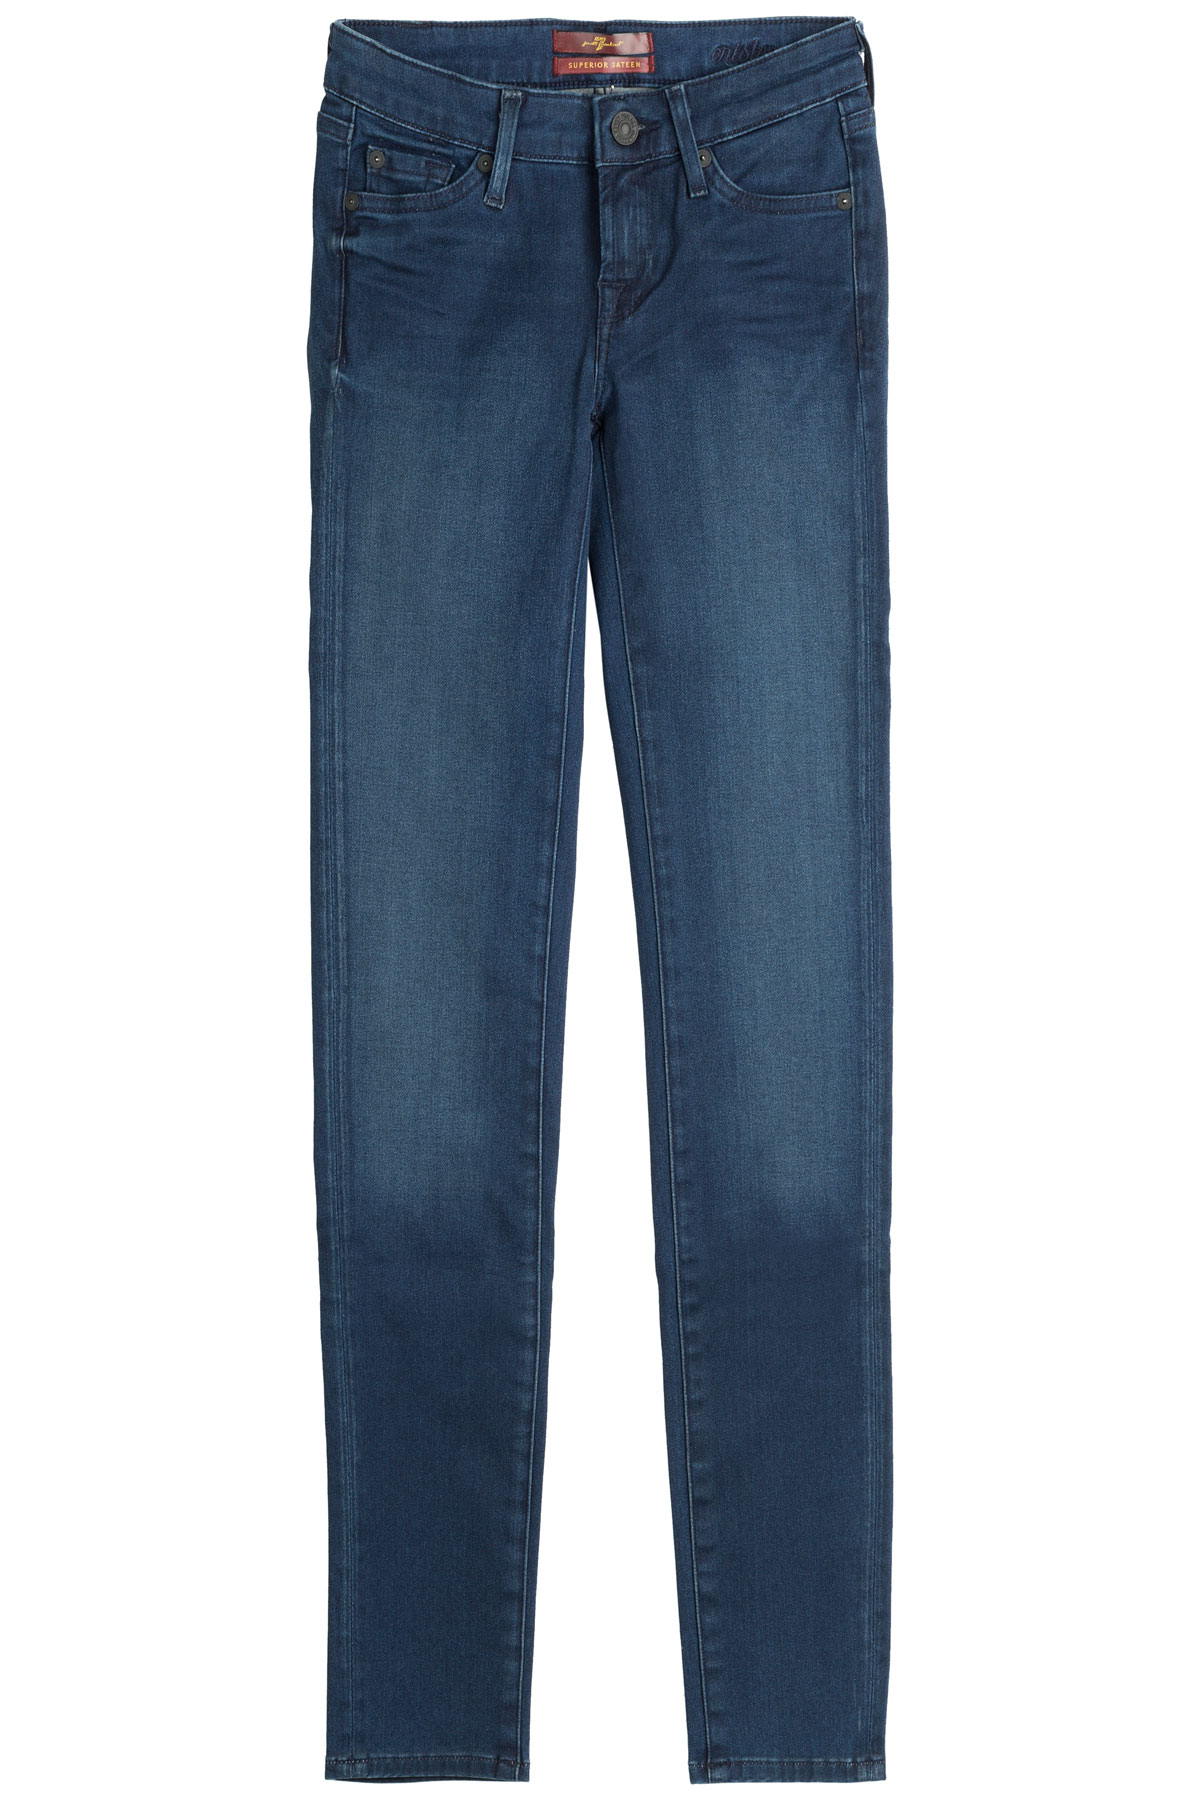 for all mankind stretch cotton skinny jeans in blue lyst. Black Bedroom Furniture Sets. Home Design Ideas